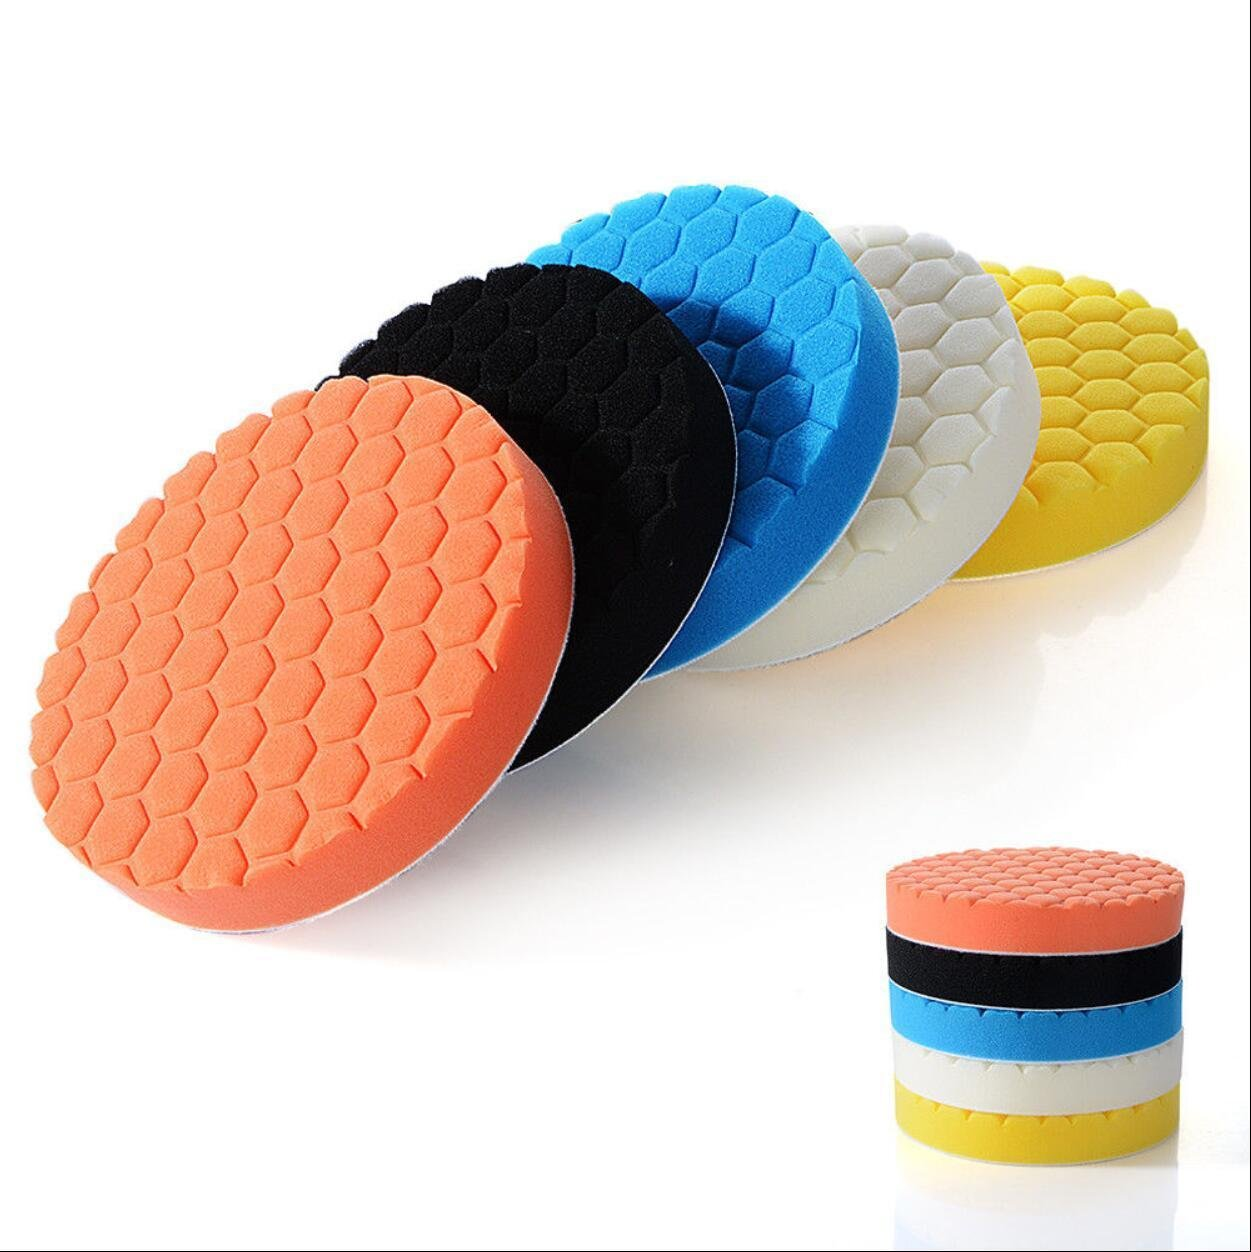 FENGLANG 5PCS Brand New 3' 80mm/4' 100mm/5 125mm/6 150mm/7 180mm Car Polishing Pads Waxing Buffing Pad Sponge Kit Set for Car Polisher Buffer Waxer Sander Polishing Waxing Sealing Glaze(7 inch/18cm) YiWuShi FenLang Unternehmen